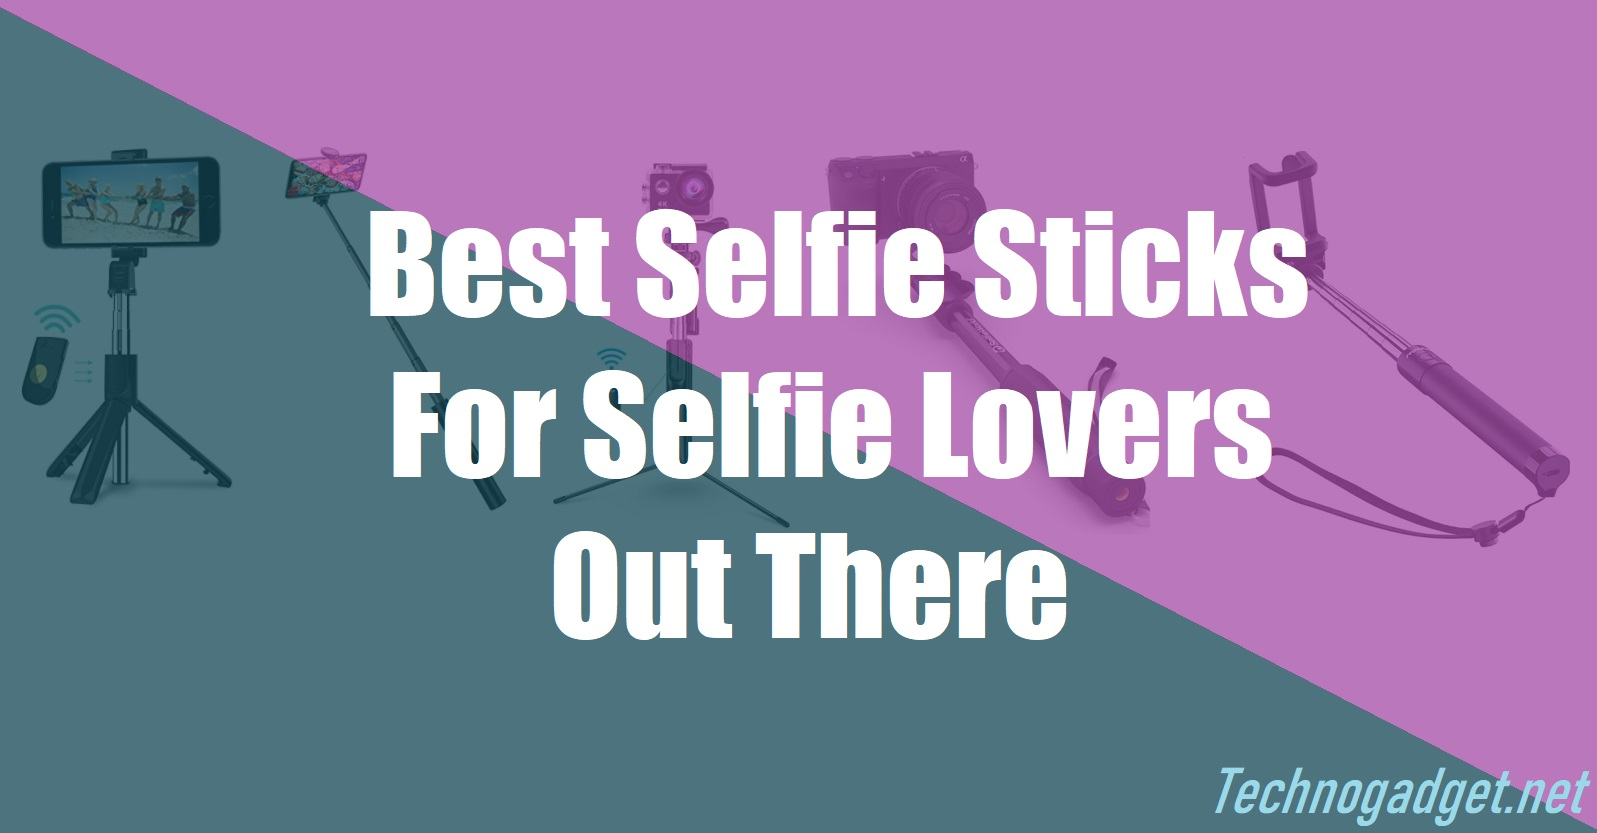 Best Selfie Sticks For Selfie Lovers Out There